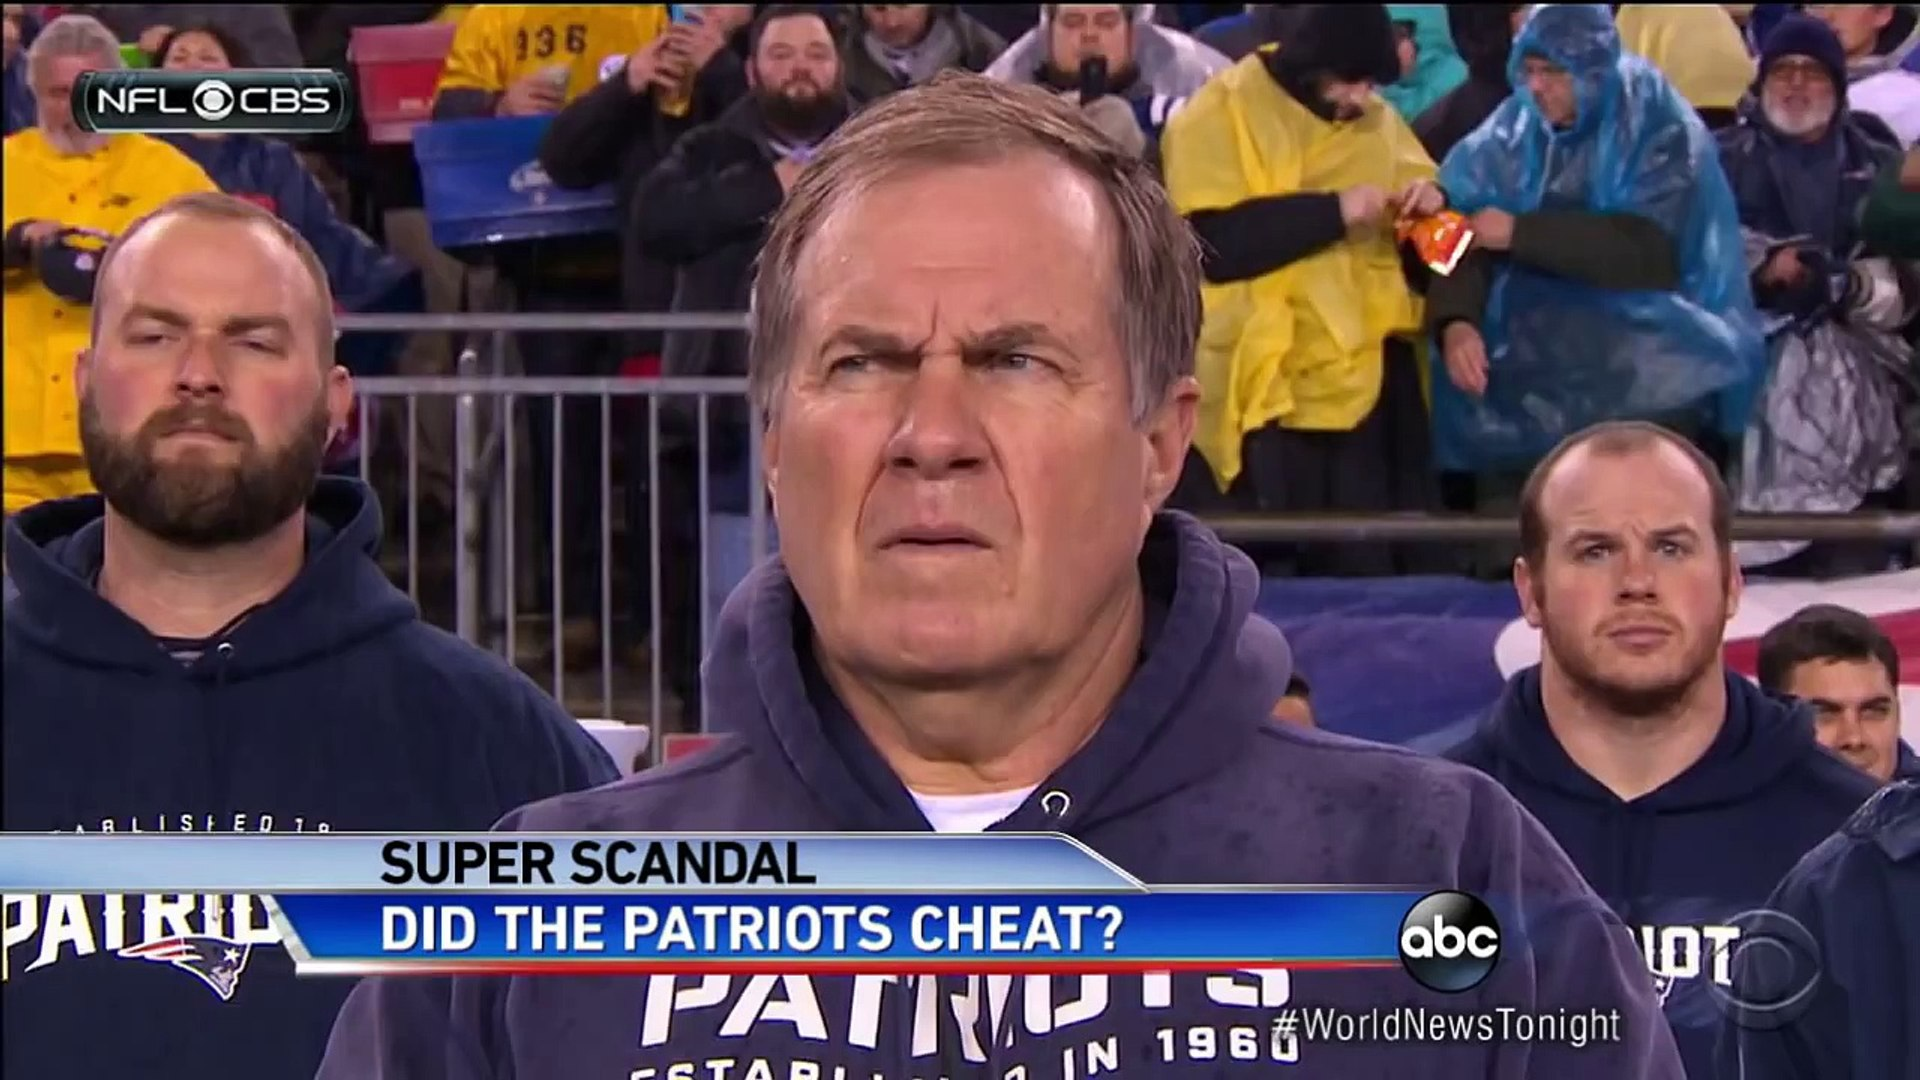 Pressure on the New England Patriots Over Under-Inflated Footballs